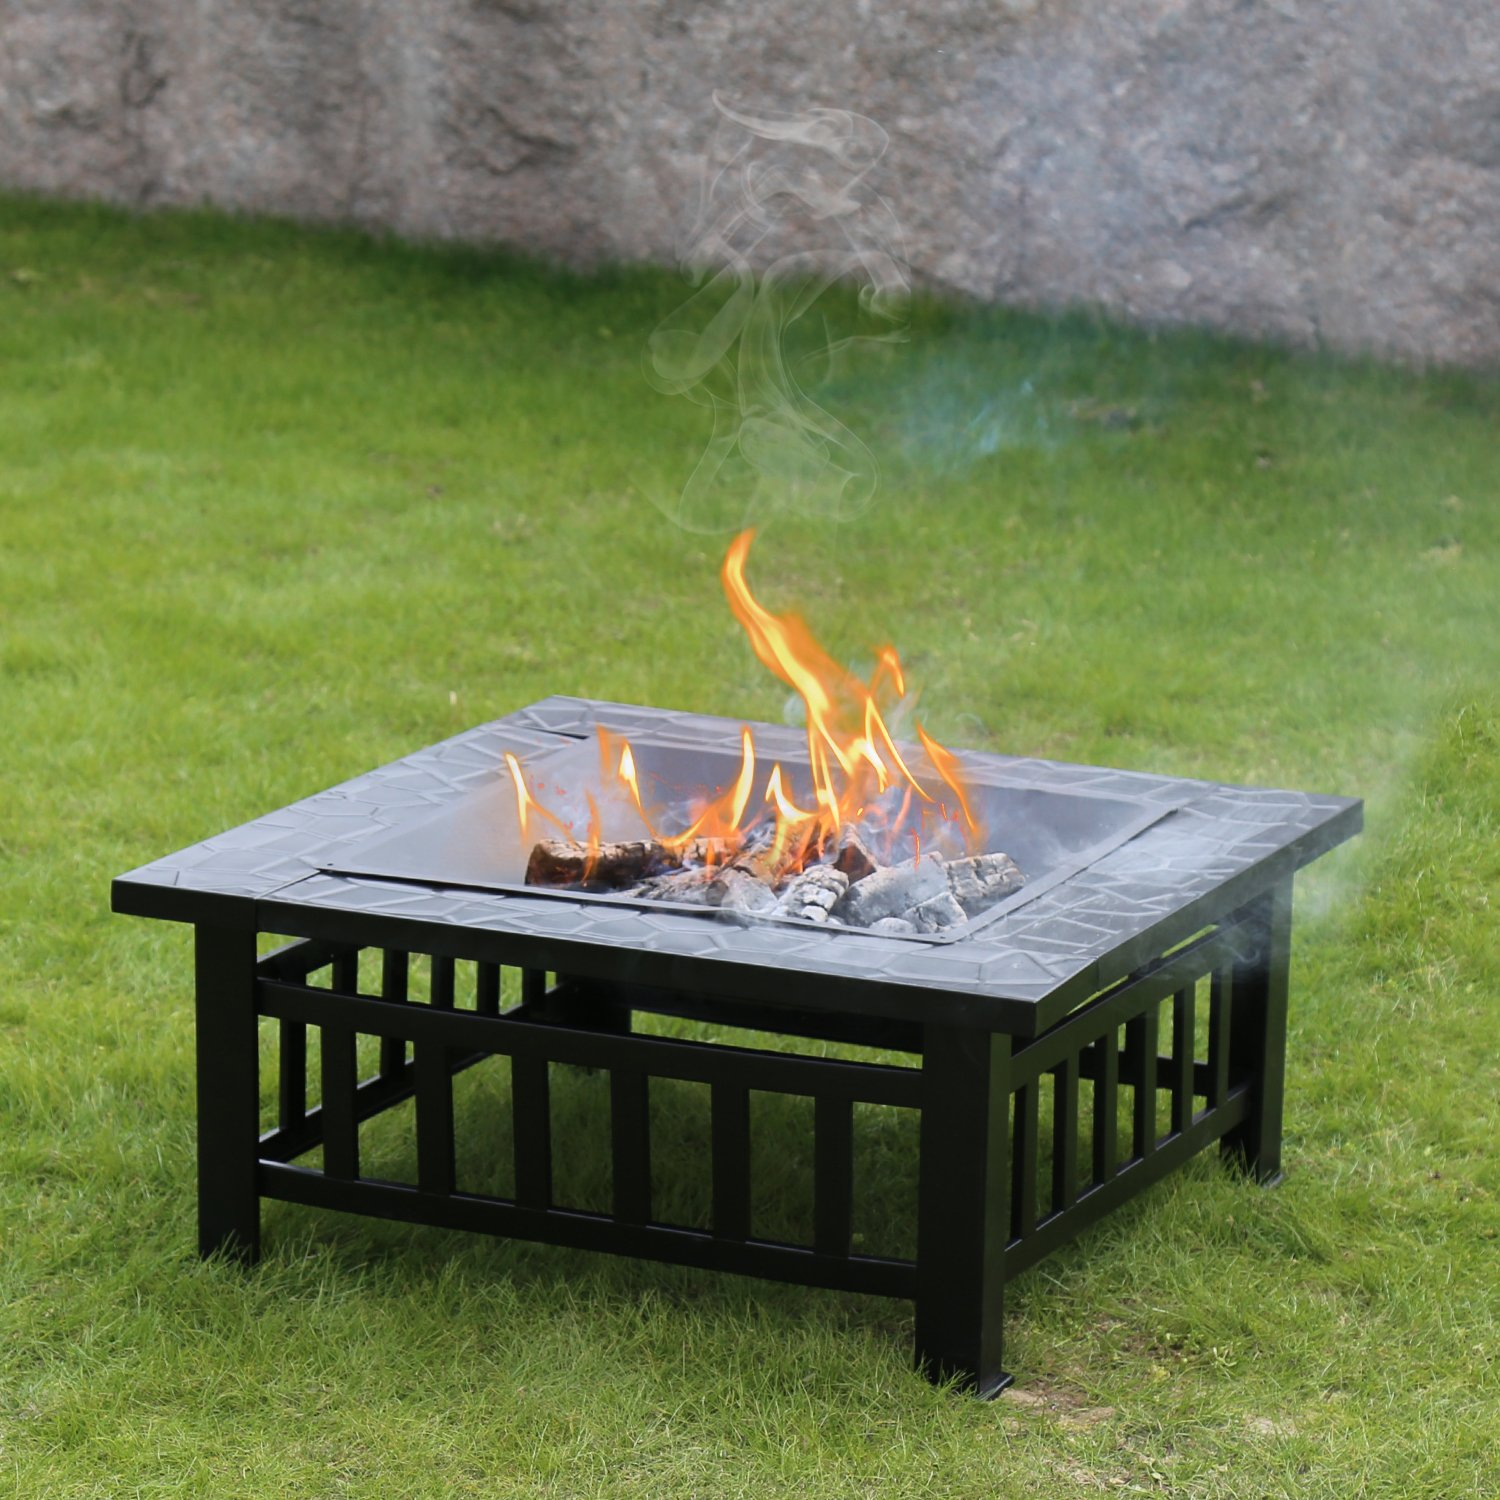 Cheap Outdoor Fire Pit Cooking Grill Find Outdoor Fire Pit Cooking Grill Deals On Line At Alibaba Com